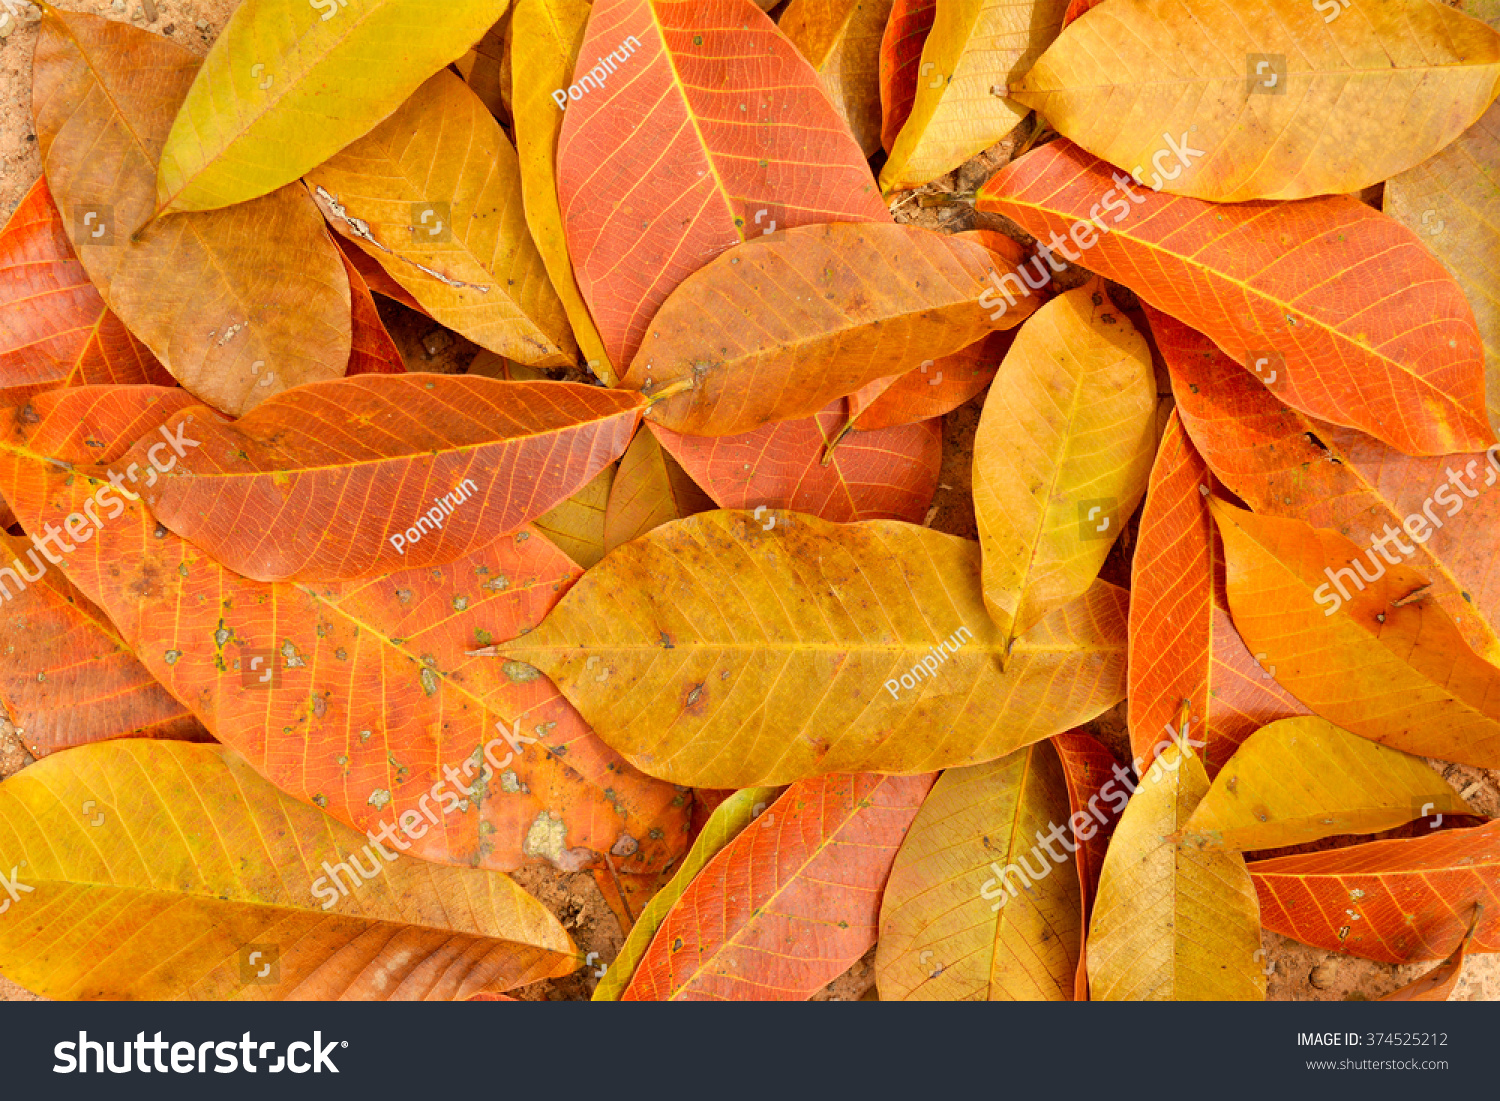 Trees Shed Last Of Their Leaves And We >> Autumn Season When Rubber Tree Shed Stock Photo Edit Now 374525212